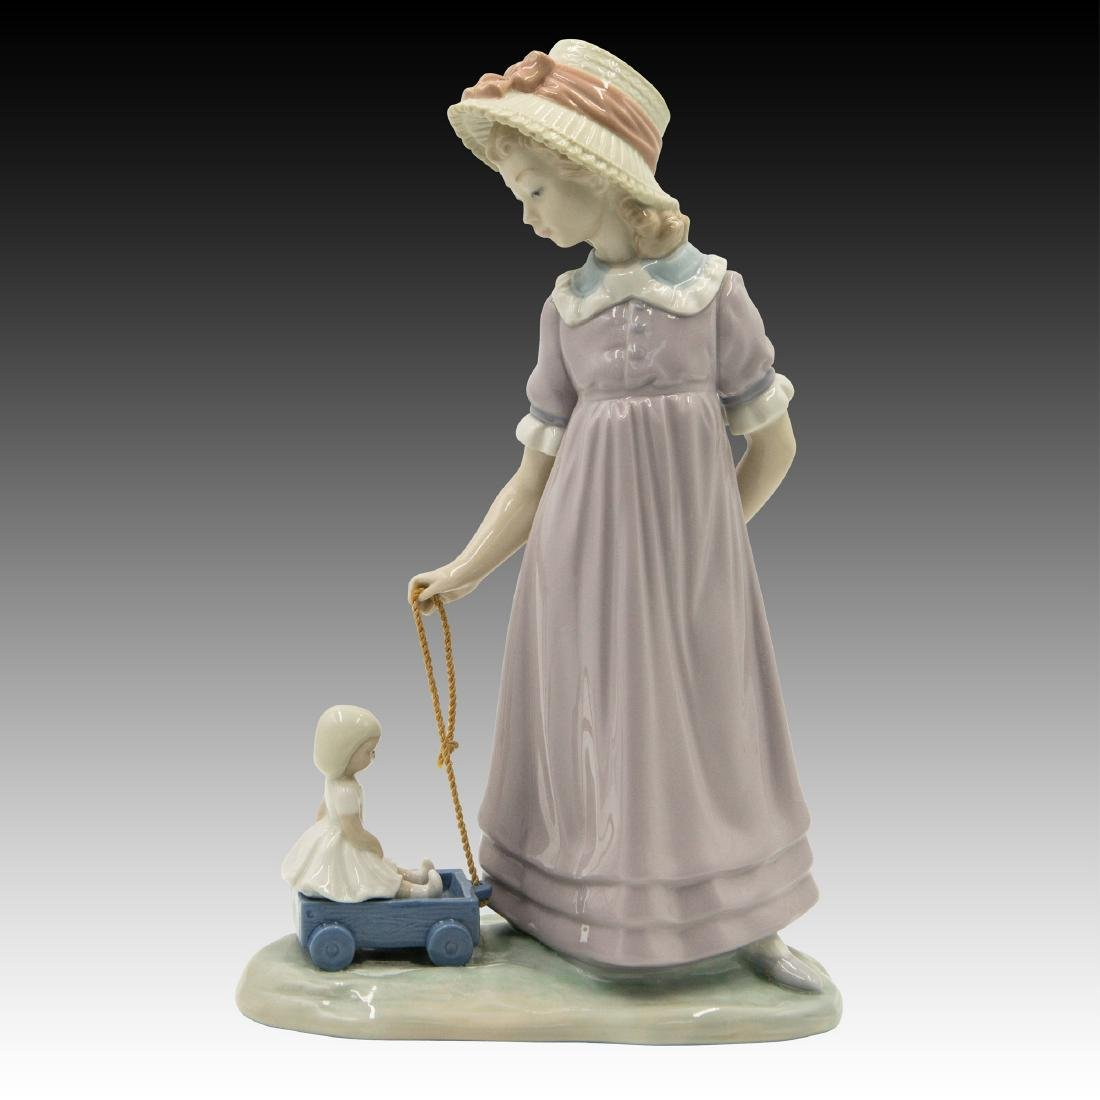 Lladro Girl with Toy Wagon Figurine 5044 Retired